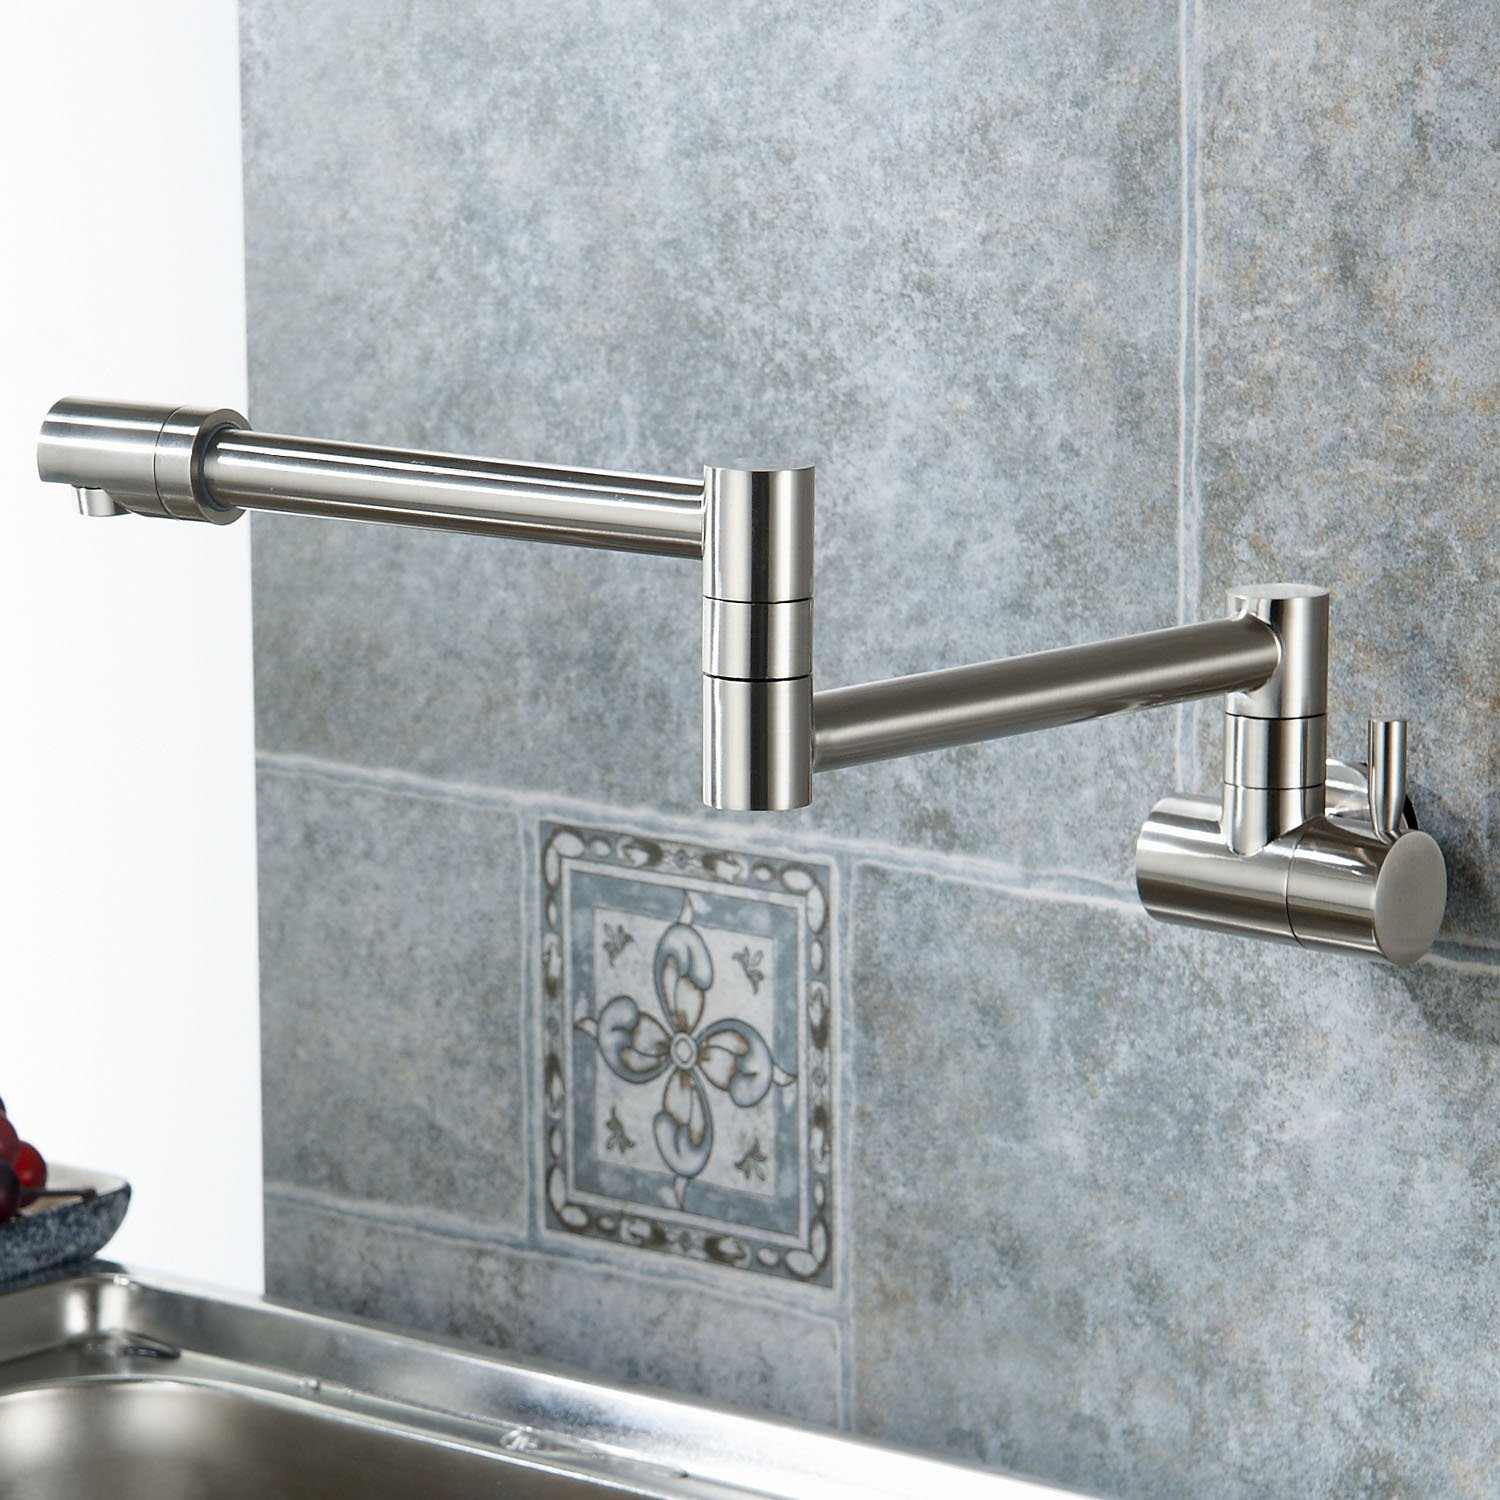 Eyekepper Wall Mounted Pot Filler Kitchen Faucet With Double Joint ...